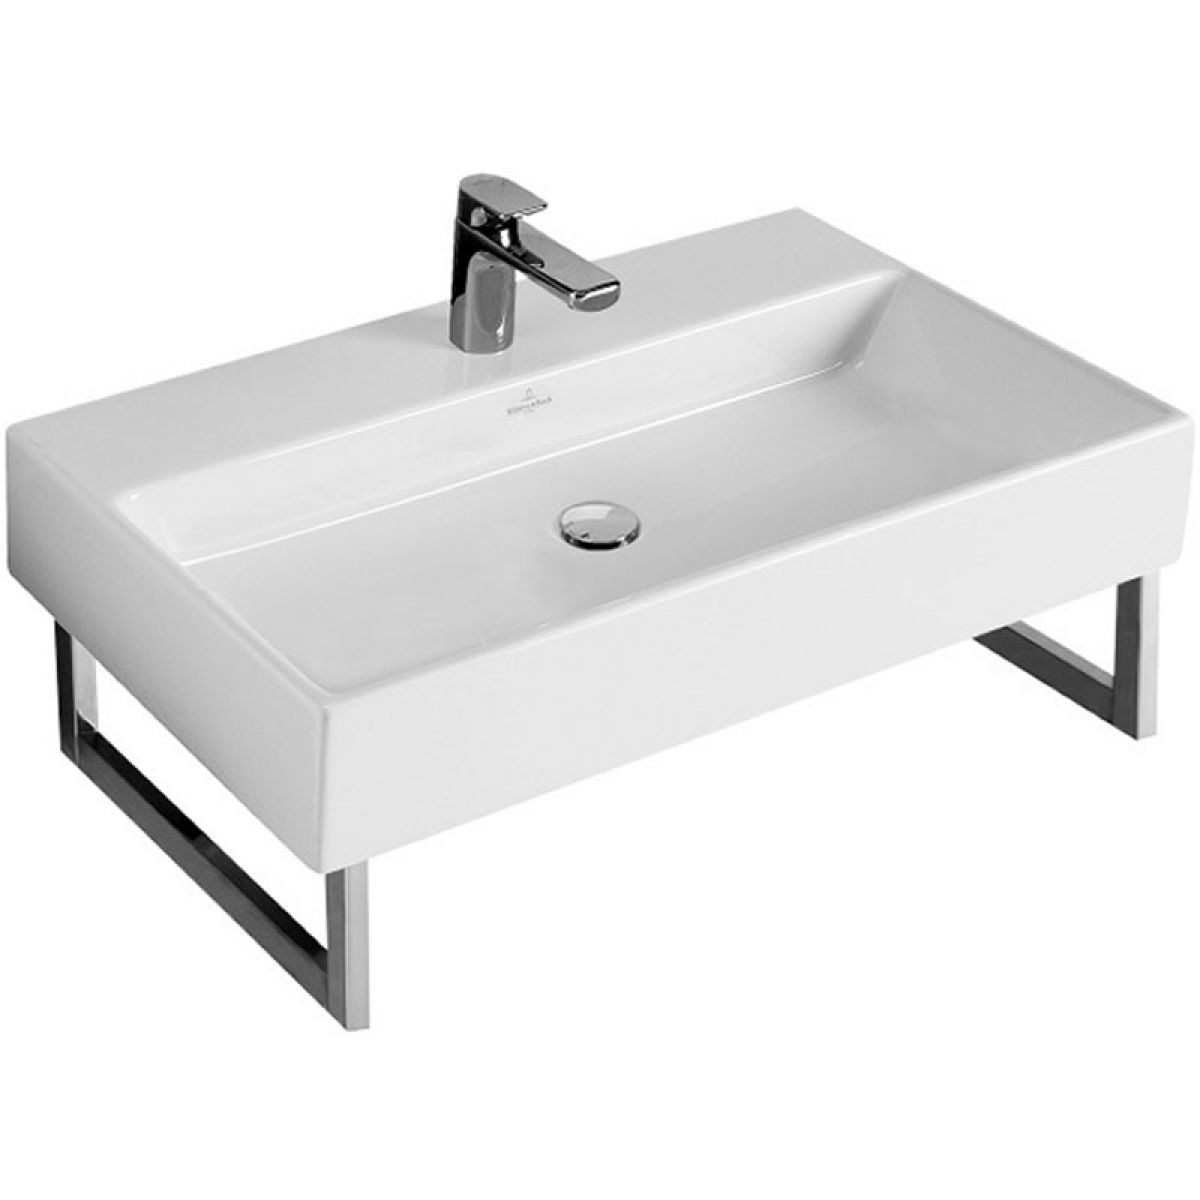 villeroy boch 800mm memento washbasin uk bathrooms. Black Bedroom Furniture Sets. Home Design Ideas